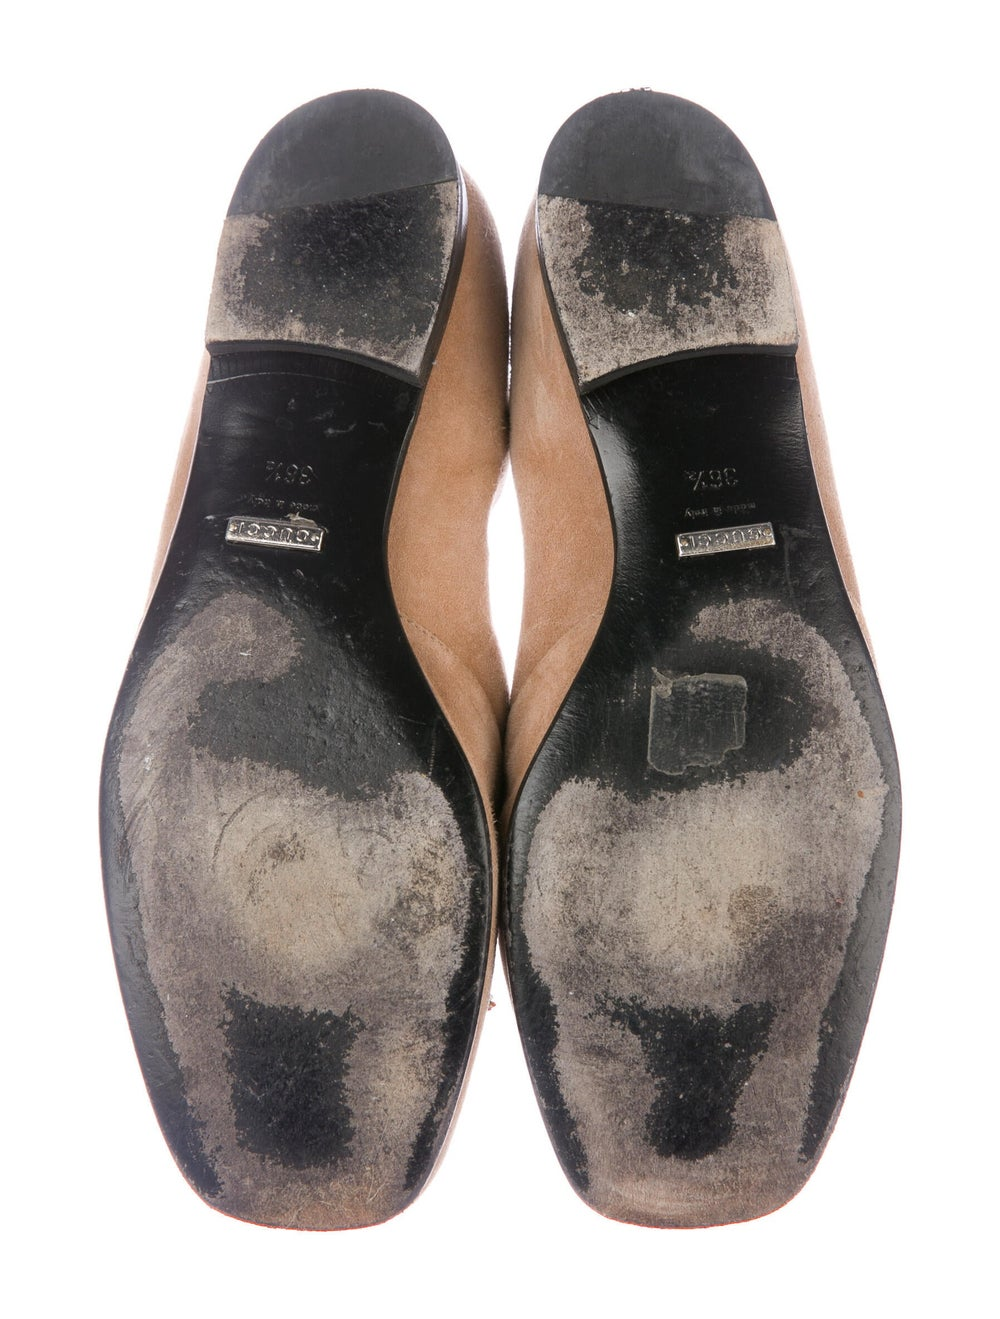 Gucci Horsebit Accent Suede Loafers - image 5